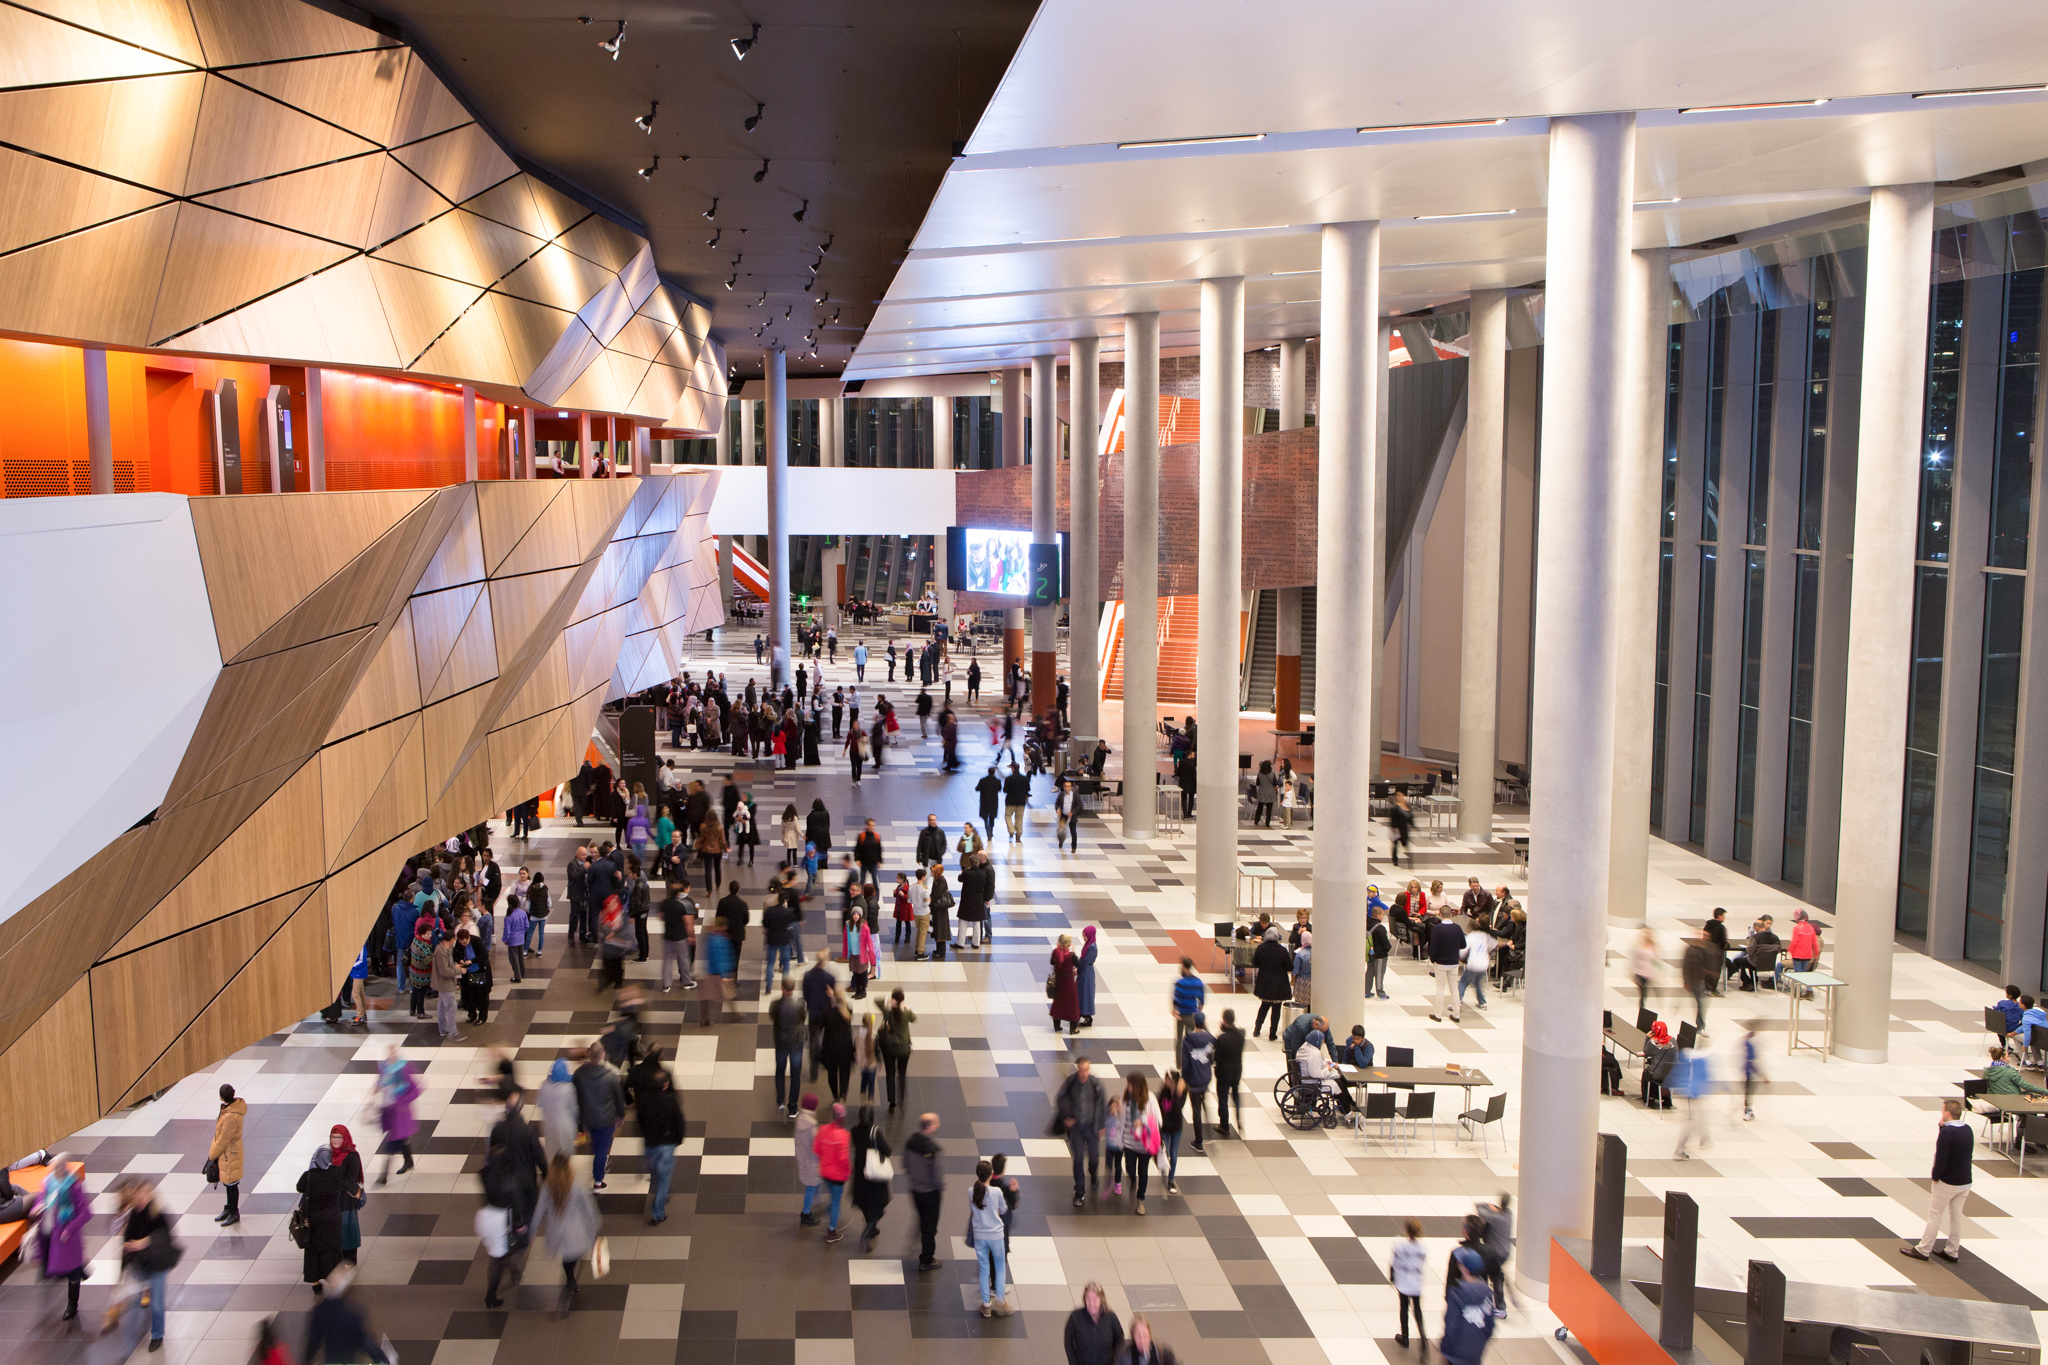 Melbourne Exhibition Centre Foyer